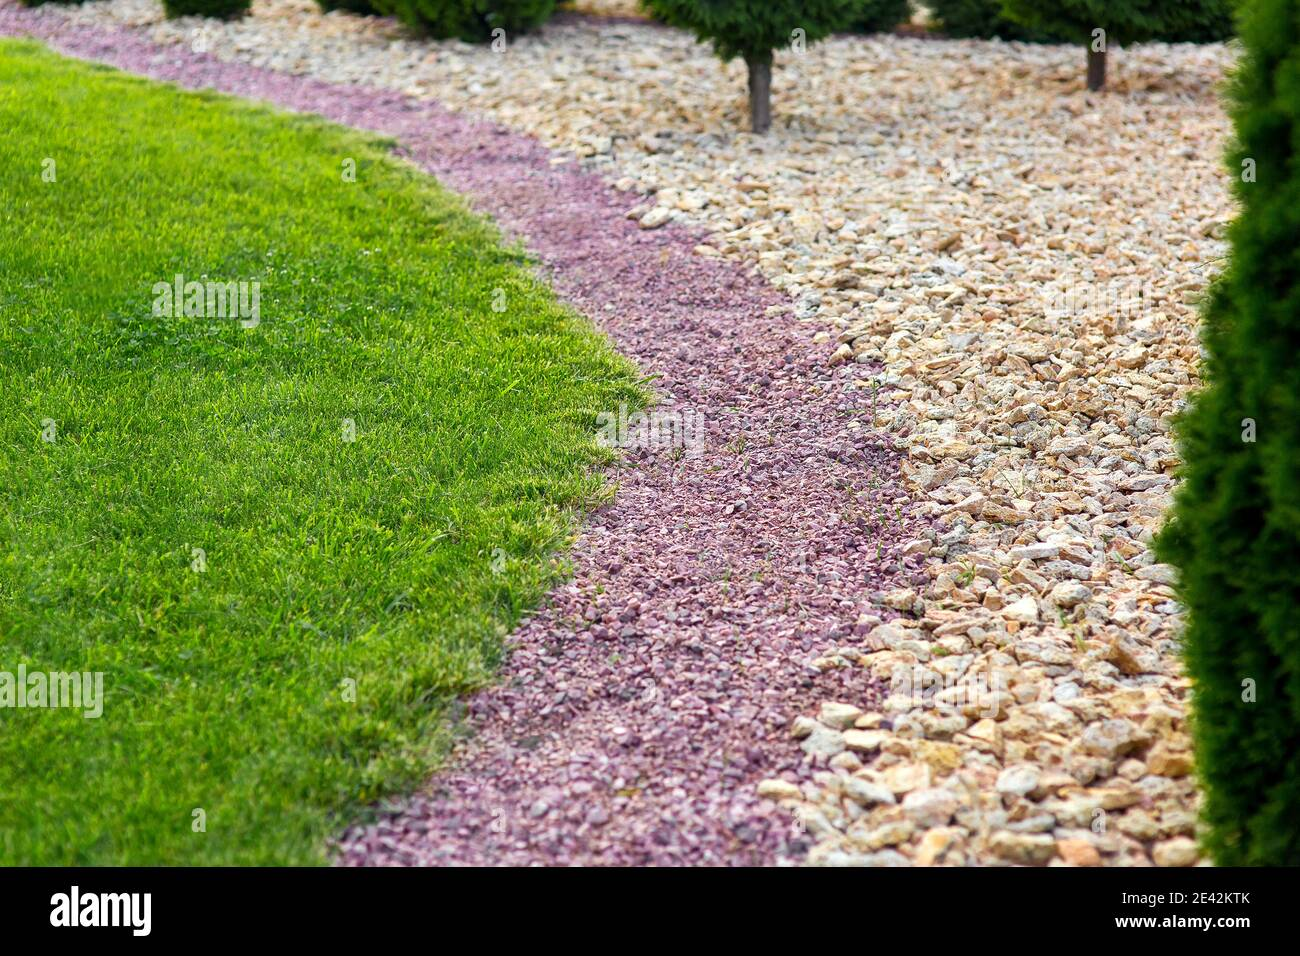 Stone Mulching High Resolution Stock Photography And Images Alamy